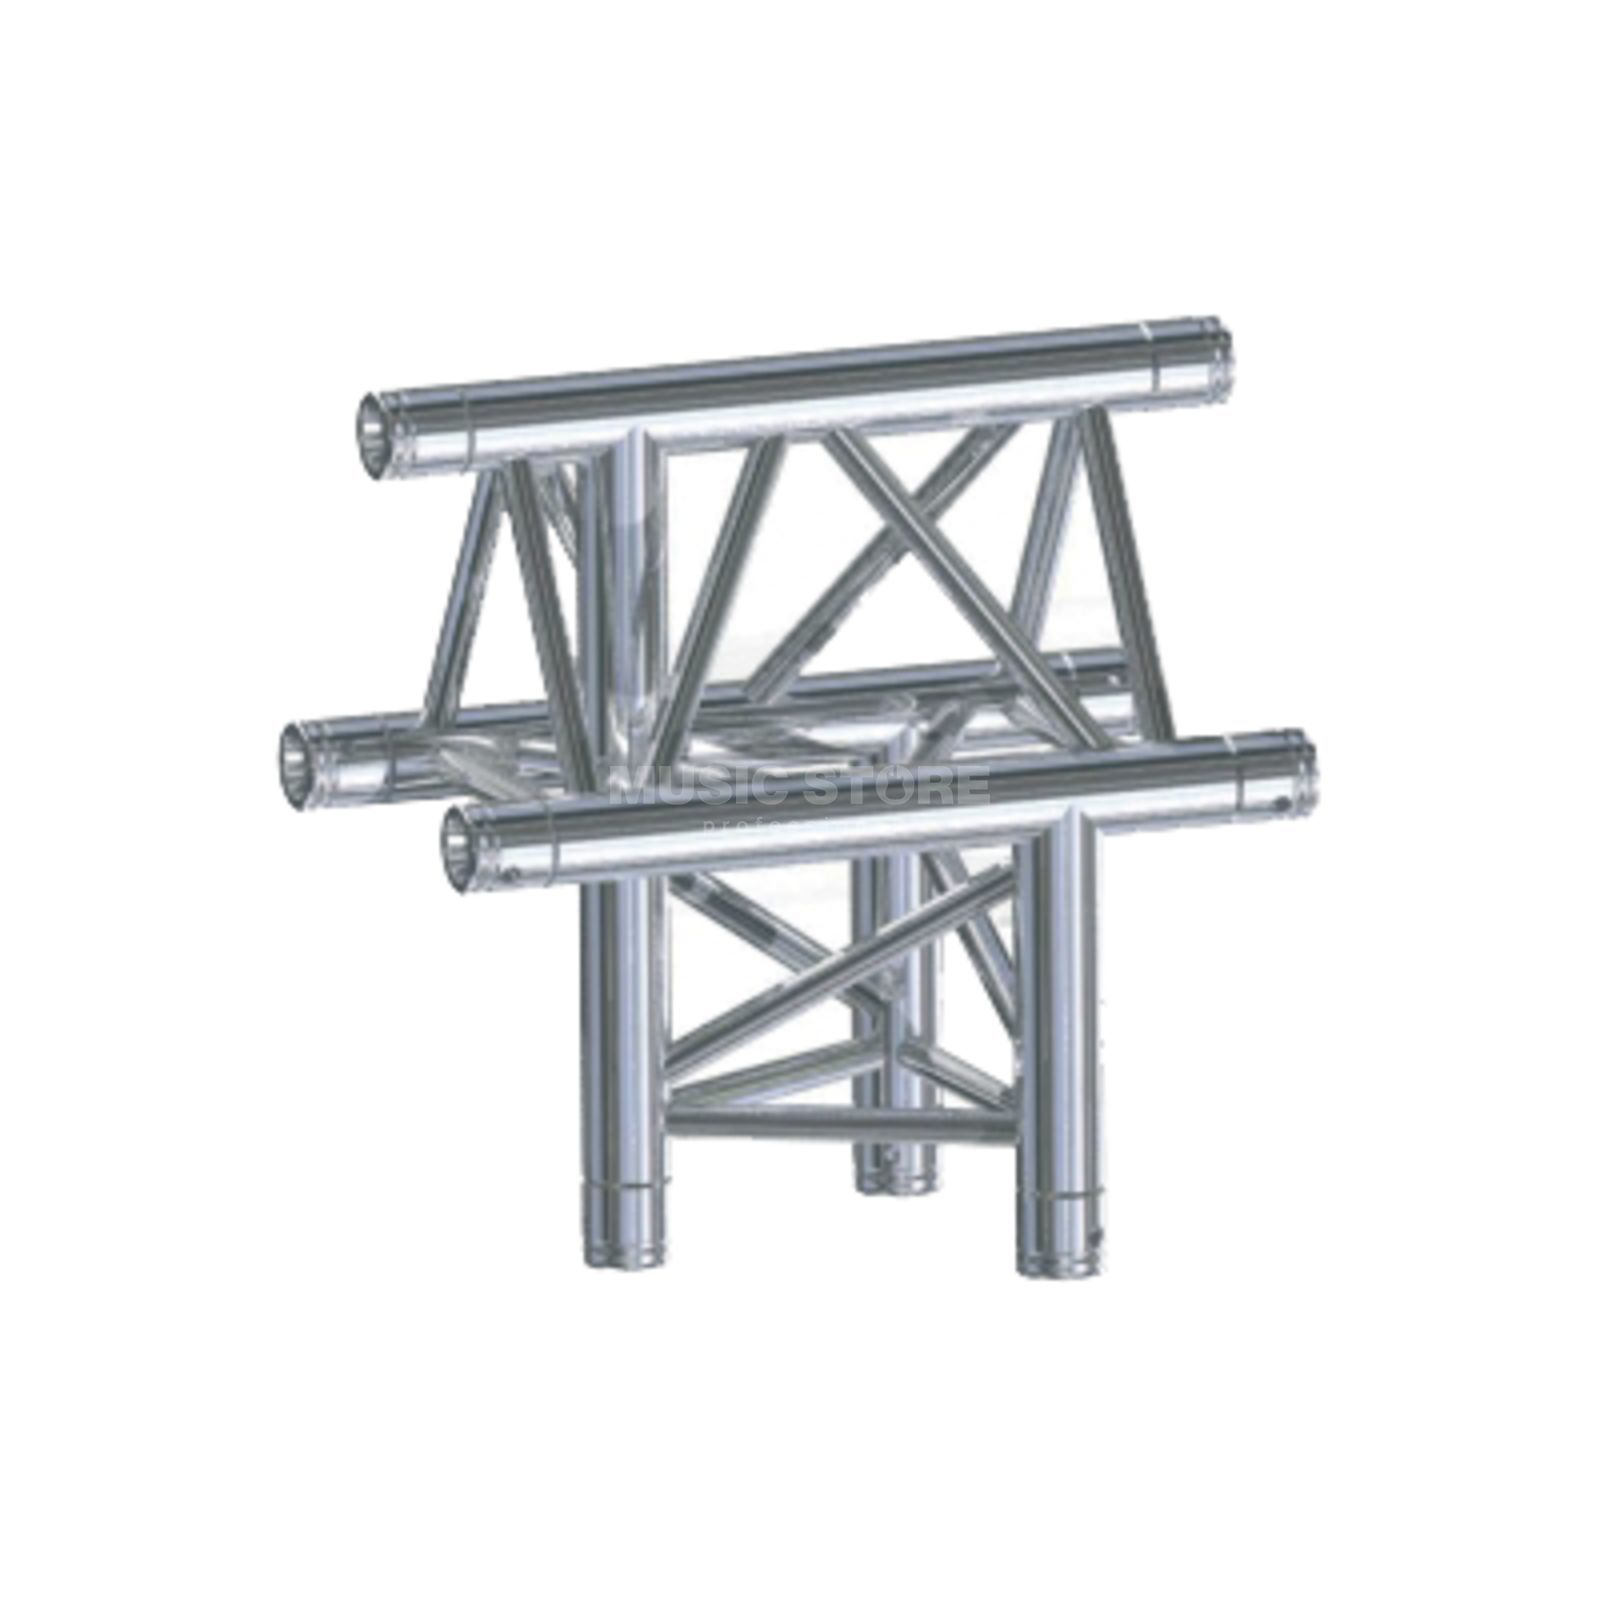 Global Truss F33 T-Piece T39 3-Point 3-Way  Produktbillede